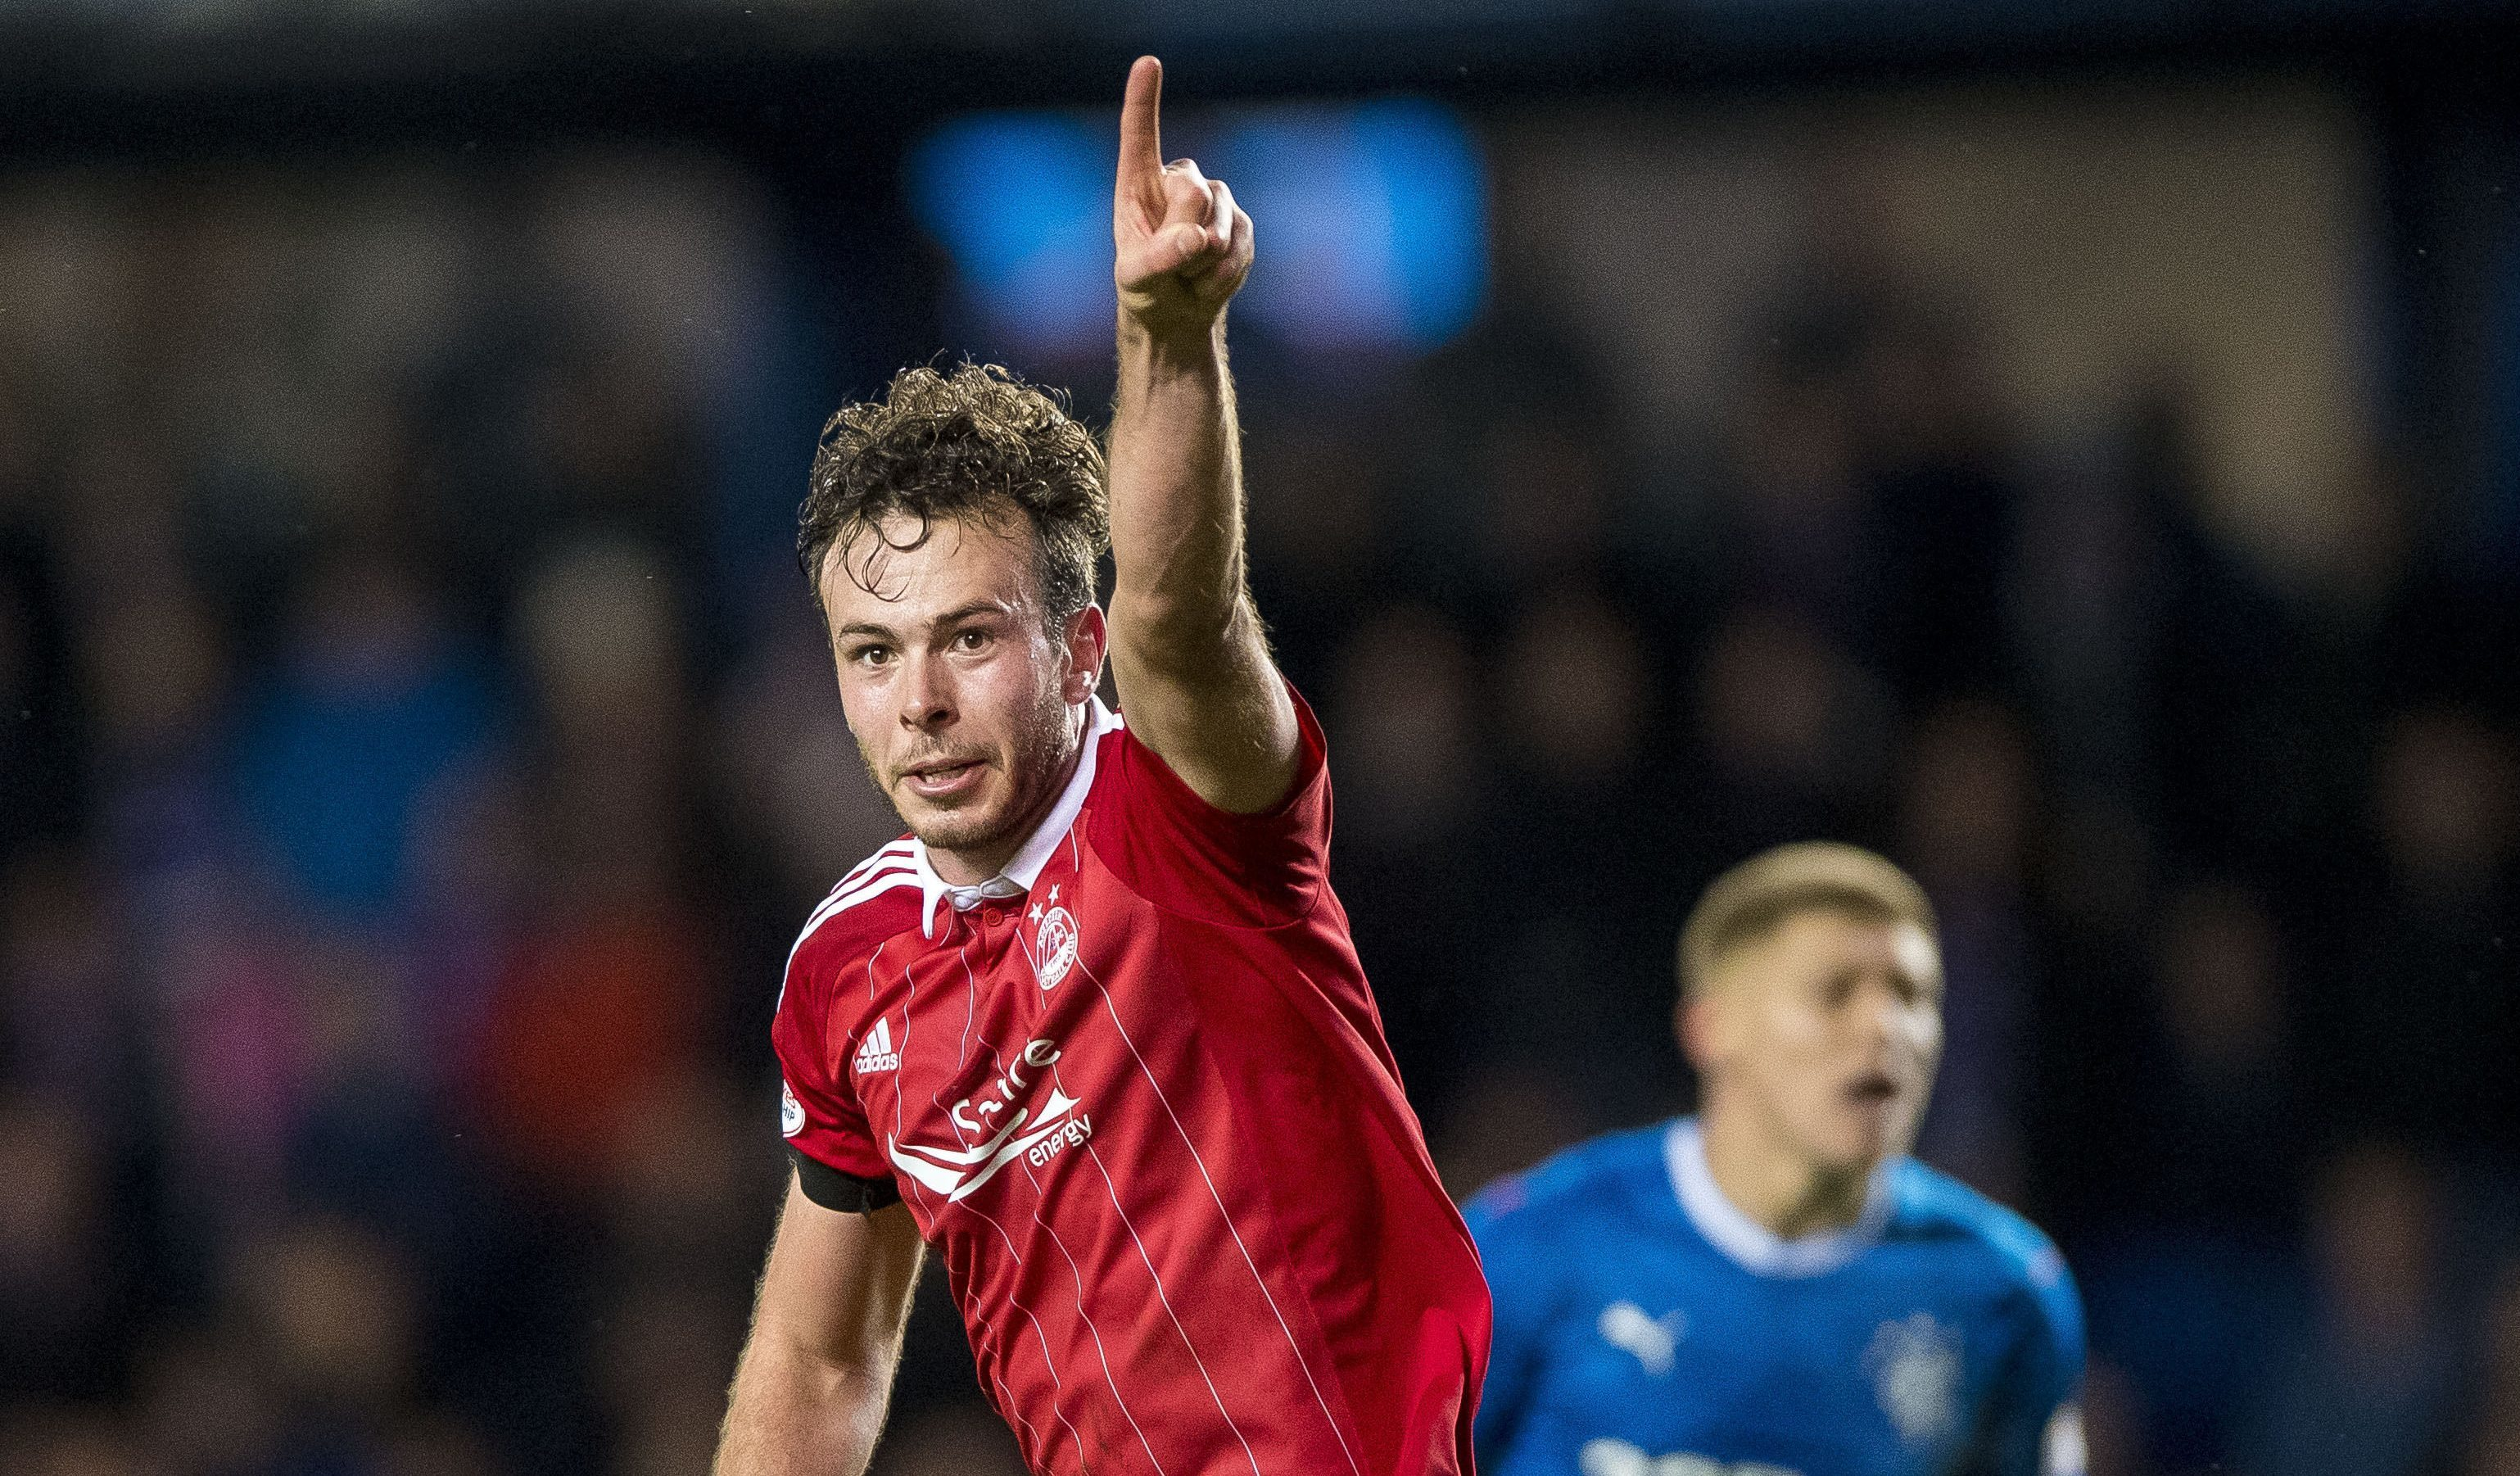 Andrew Considine has signed a new deal.